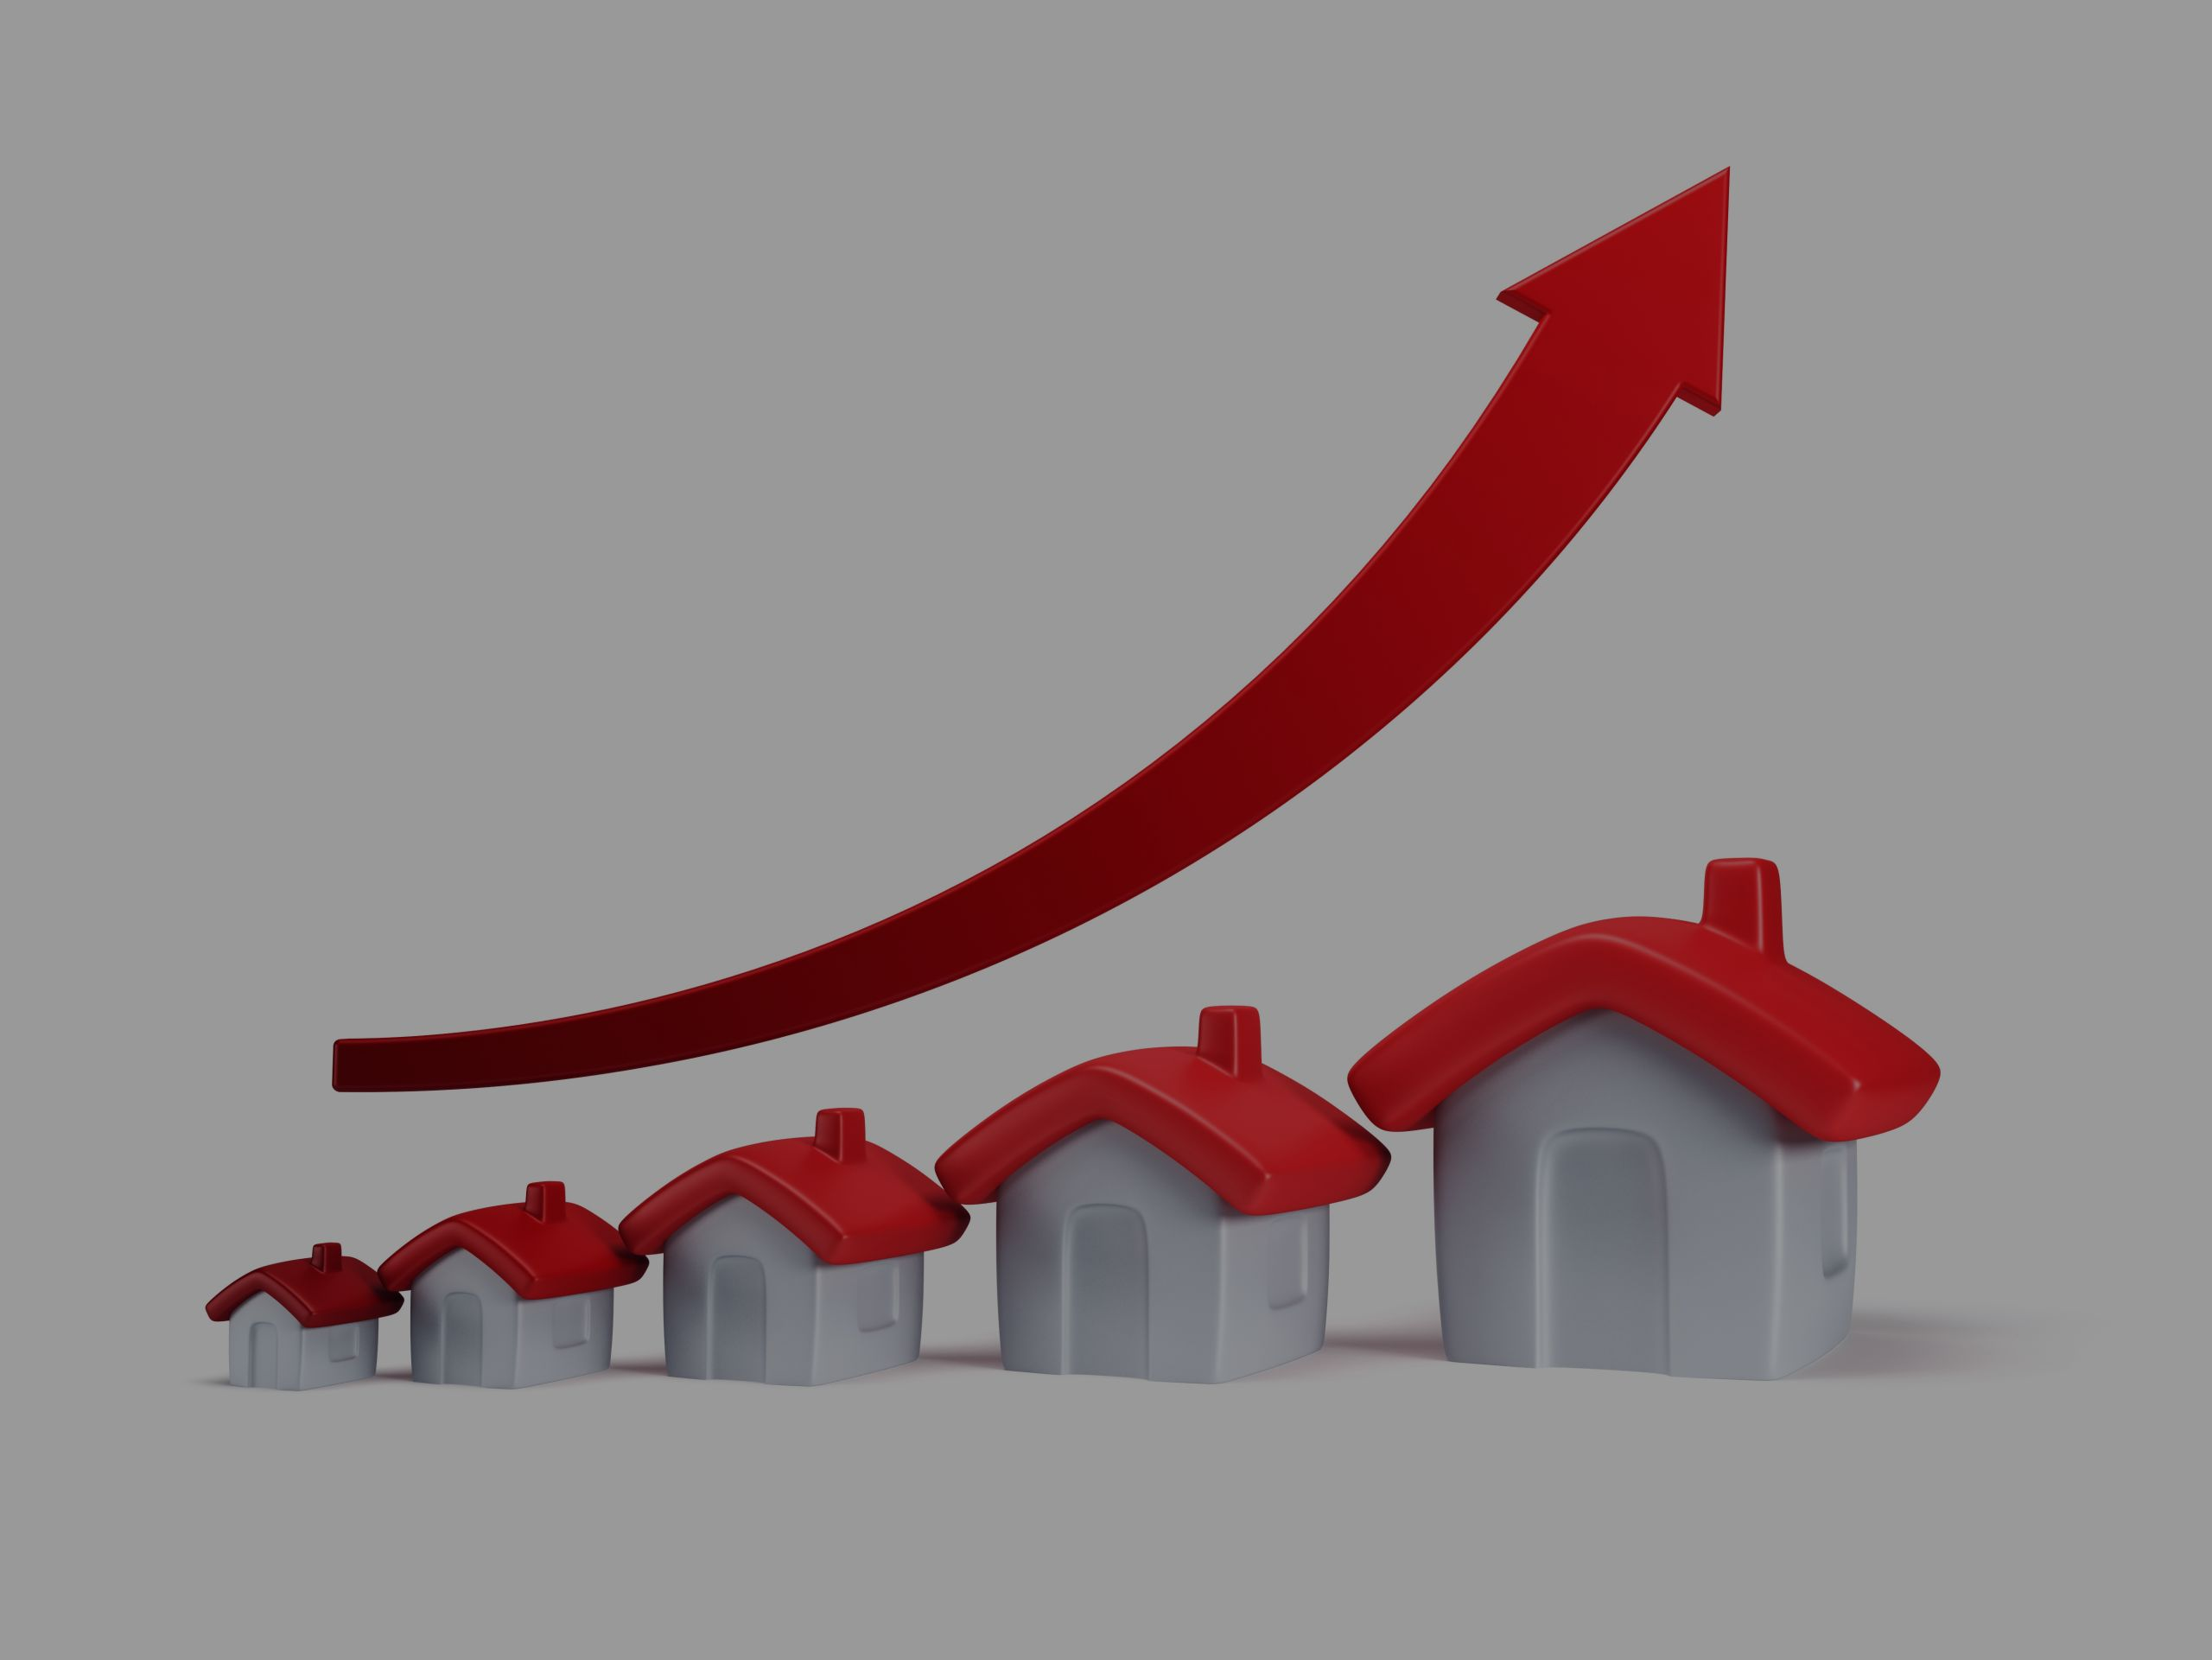 Home Sale Contracts, Number of First-Time Buyers Rise in February 2015